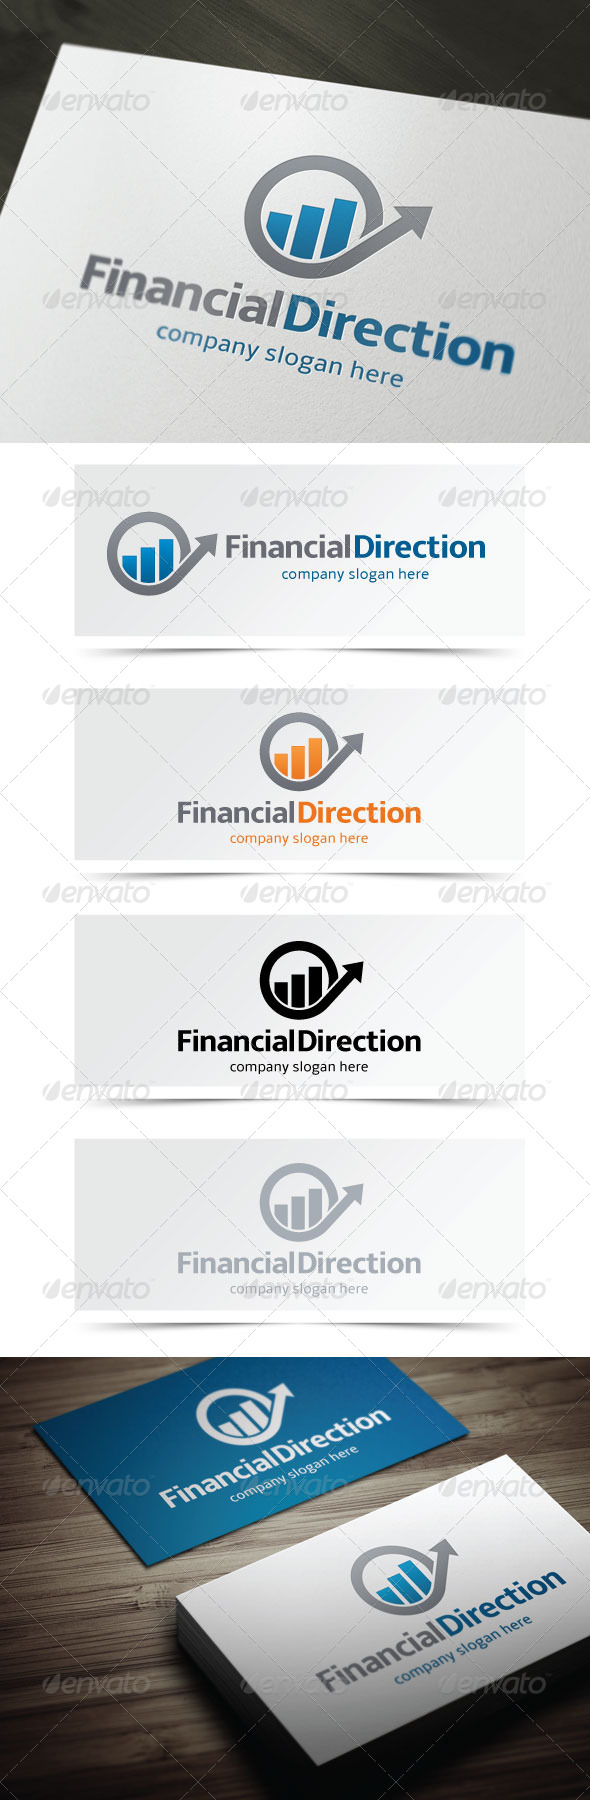 Financial Direction